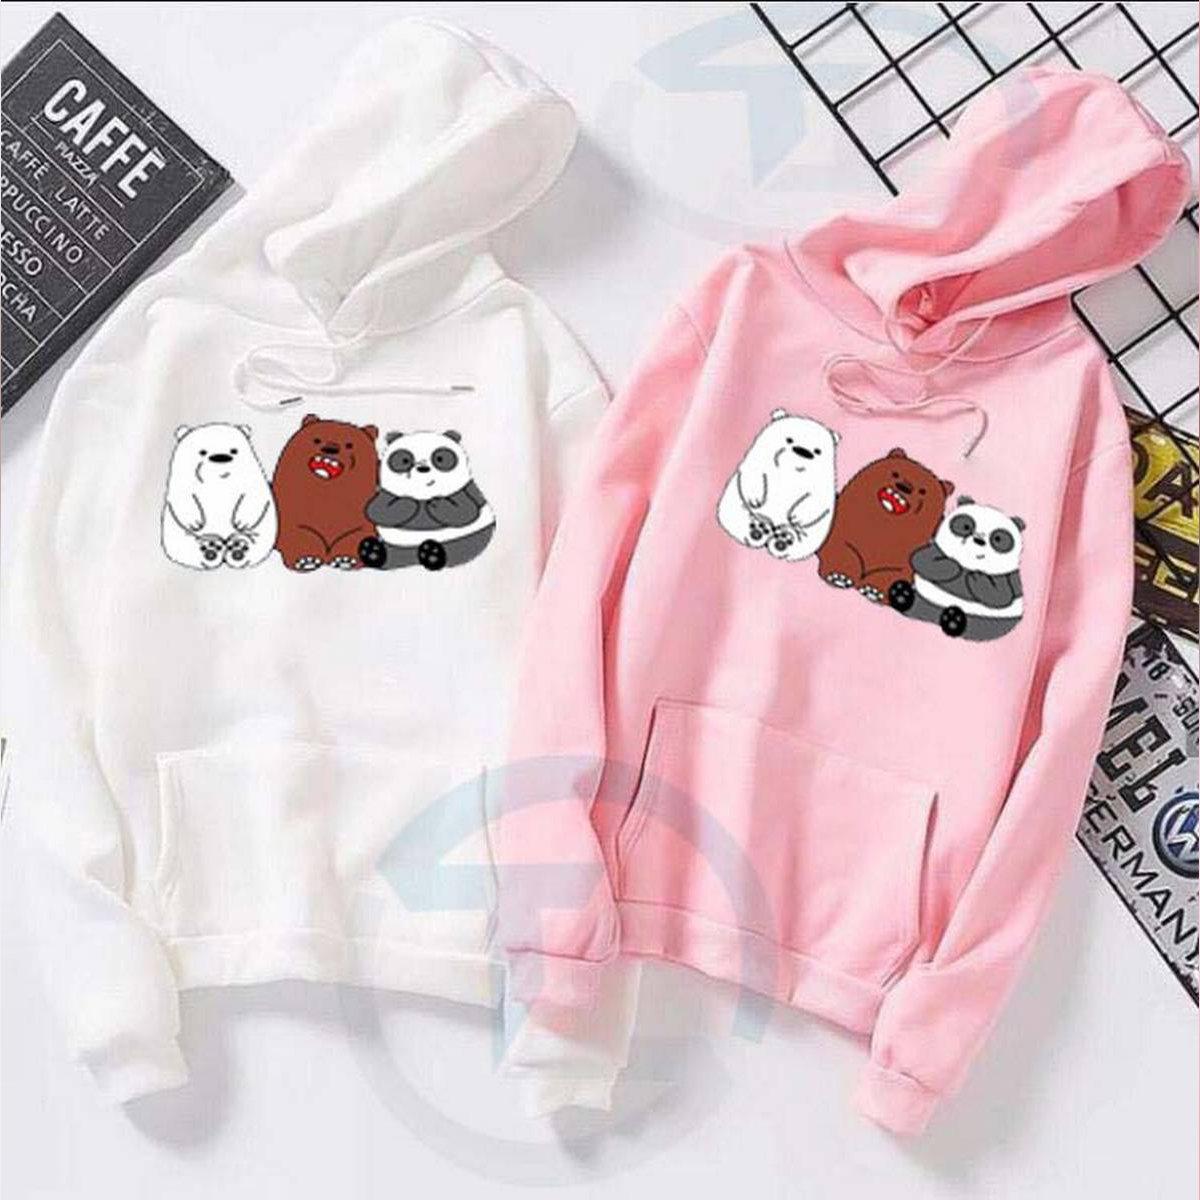 Hoddie for girls new and stylish design, ,Winter Wear ,Export Quality , Round Neck